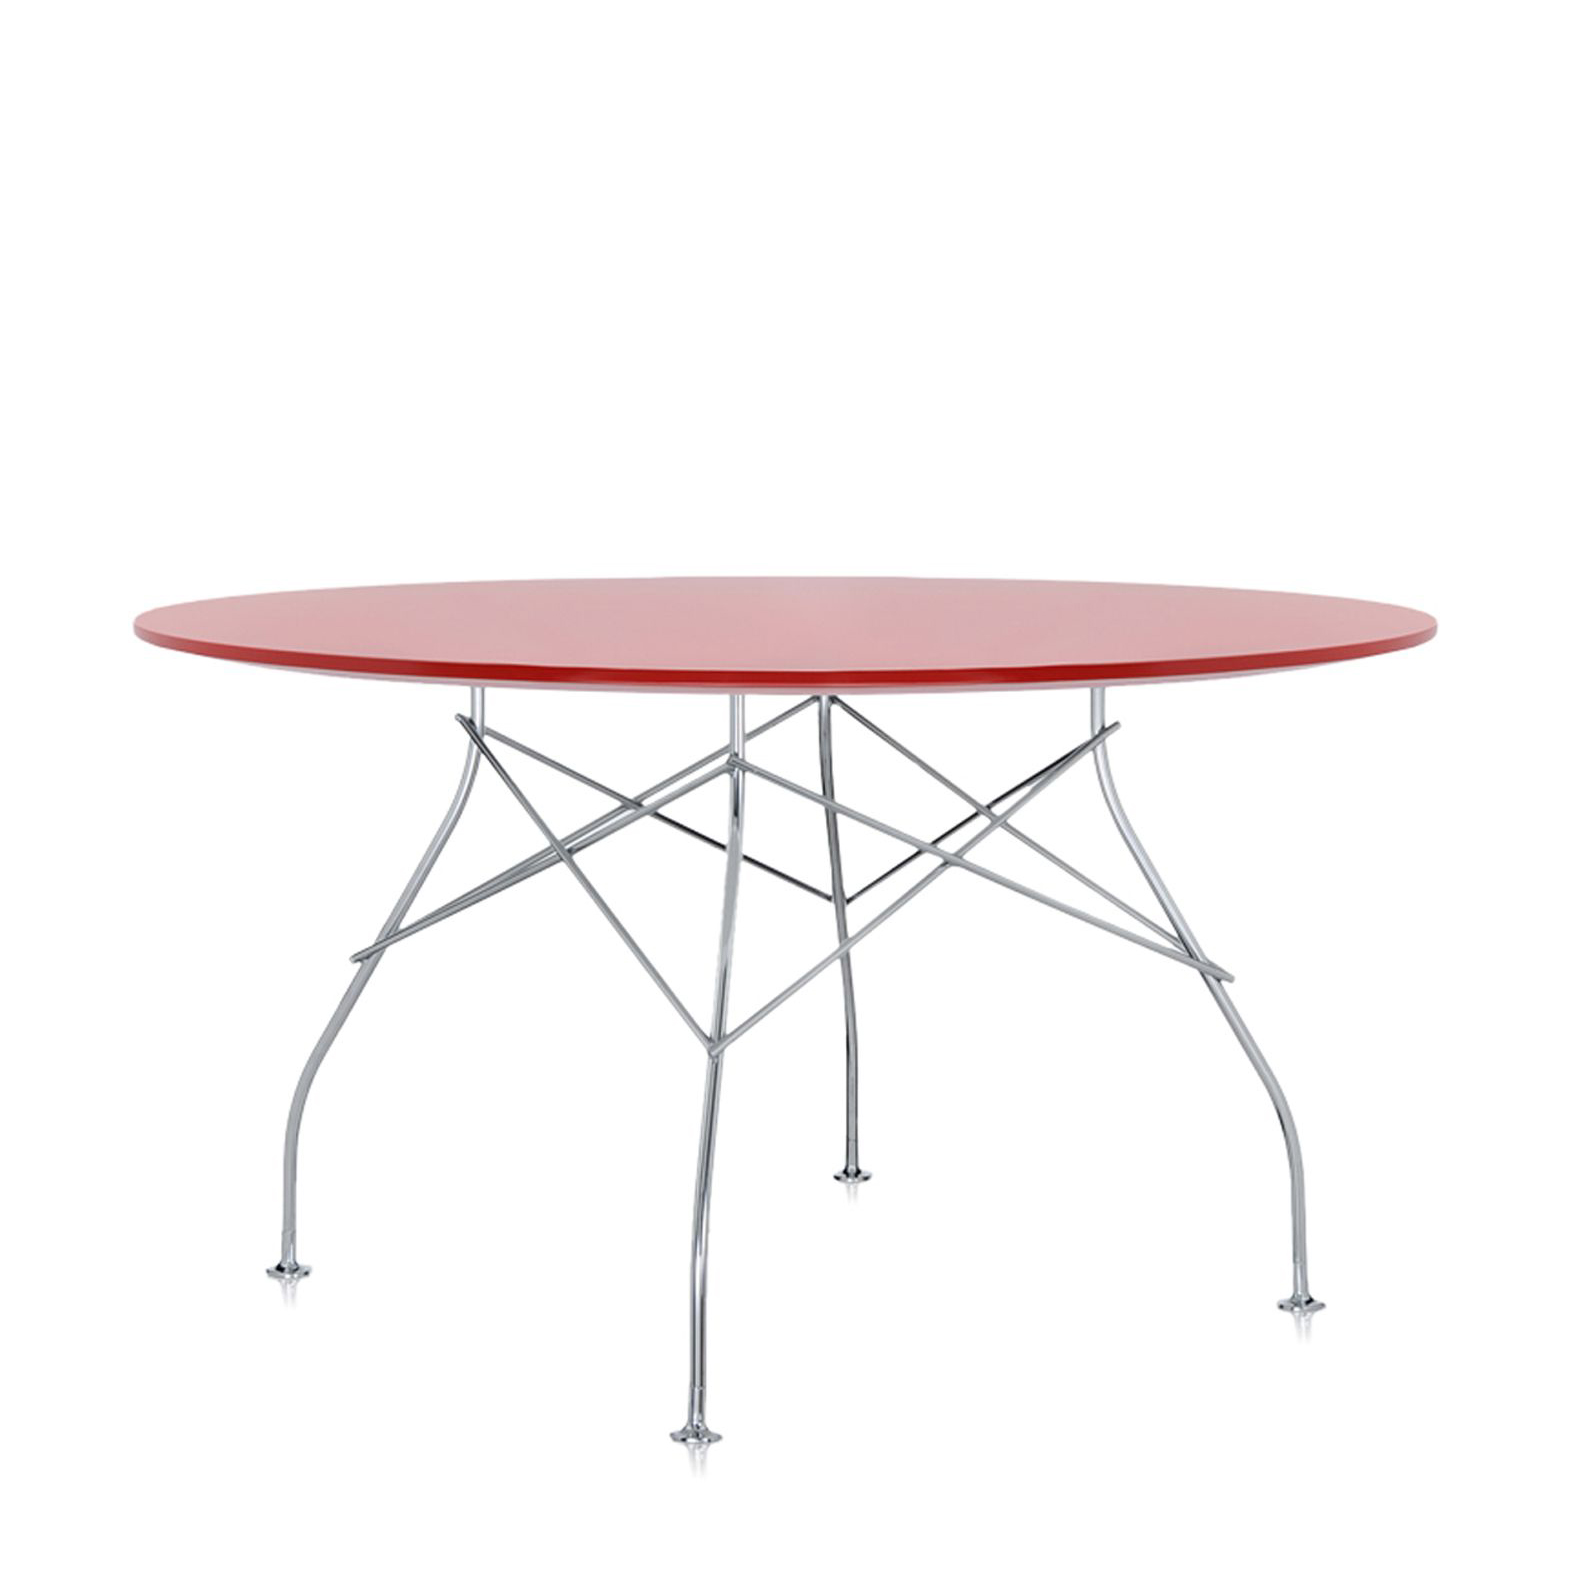 Kartell Round Table Glossy Round Table Versatile Table For The Home Office